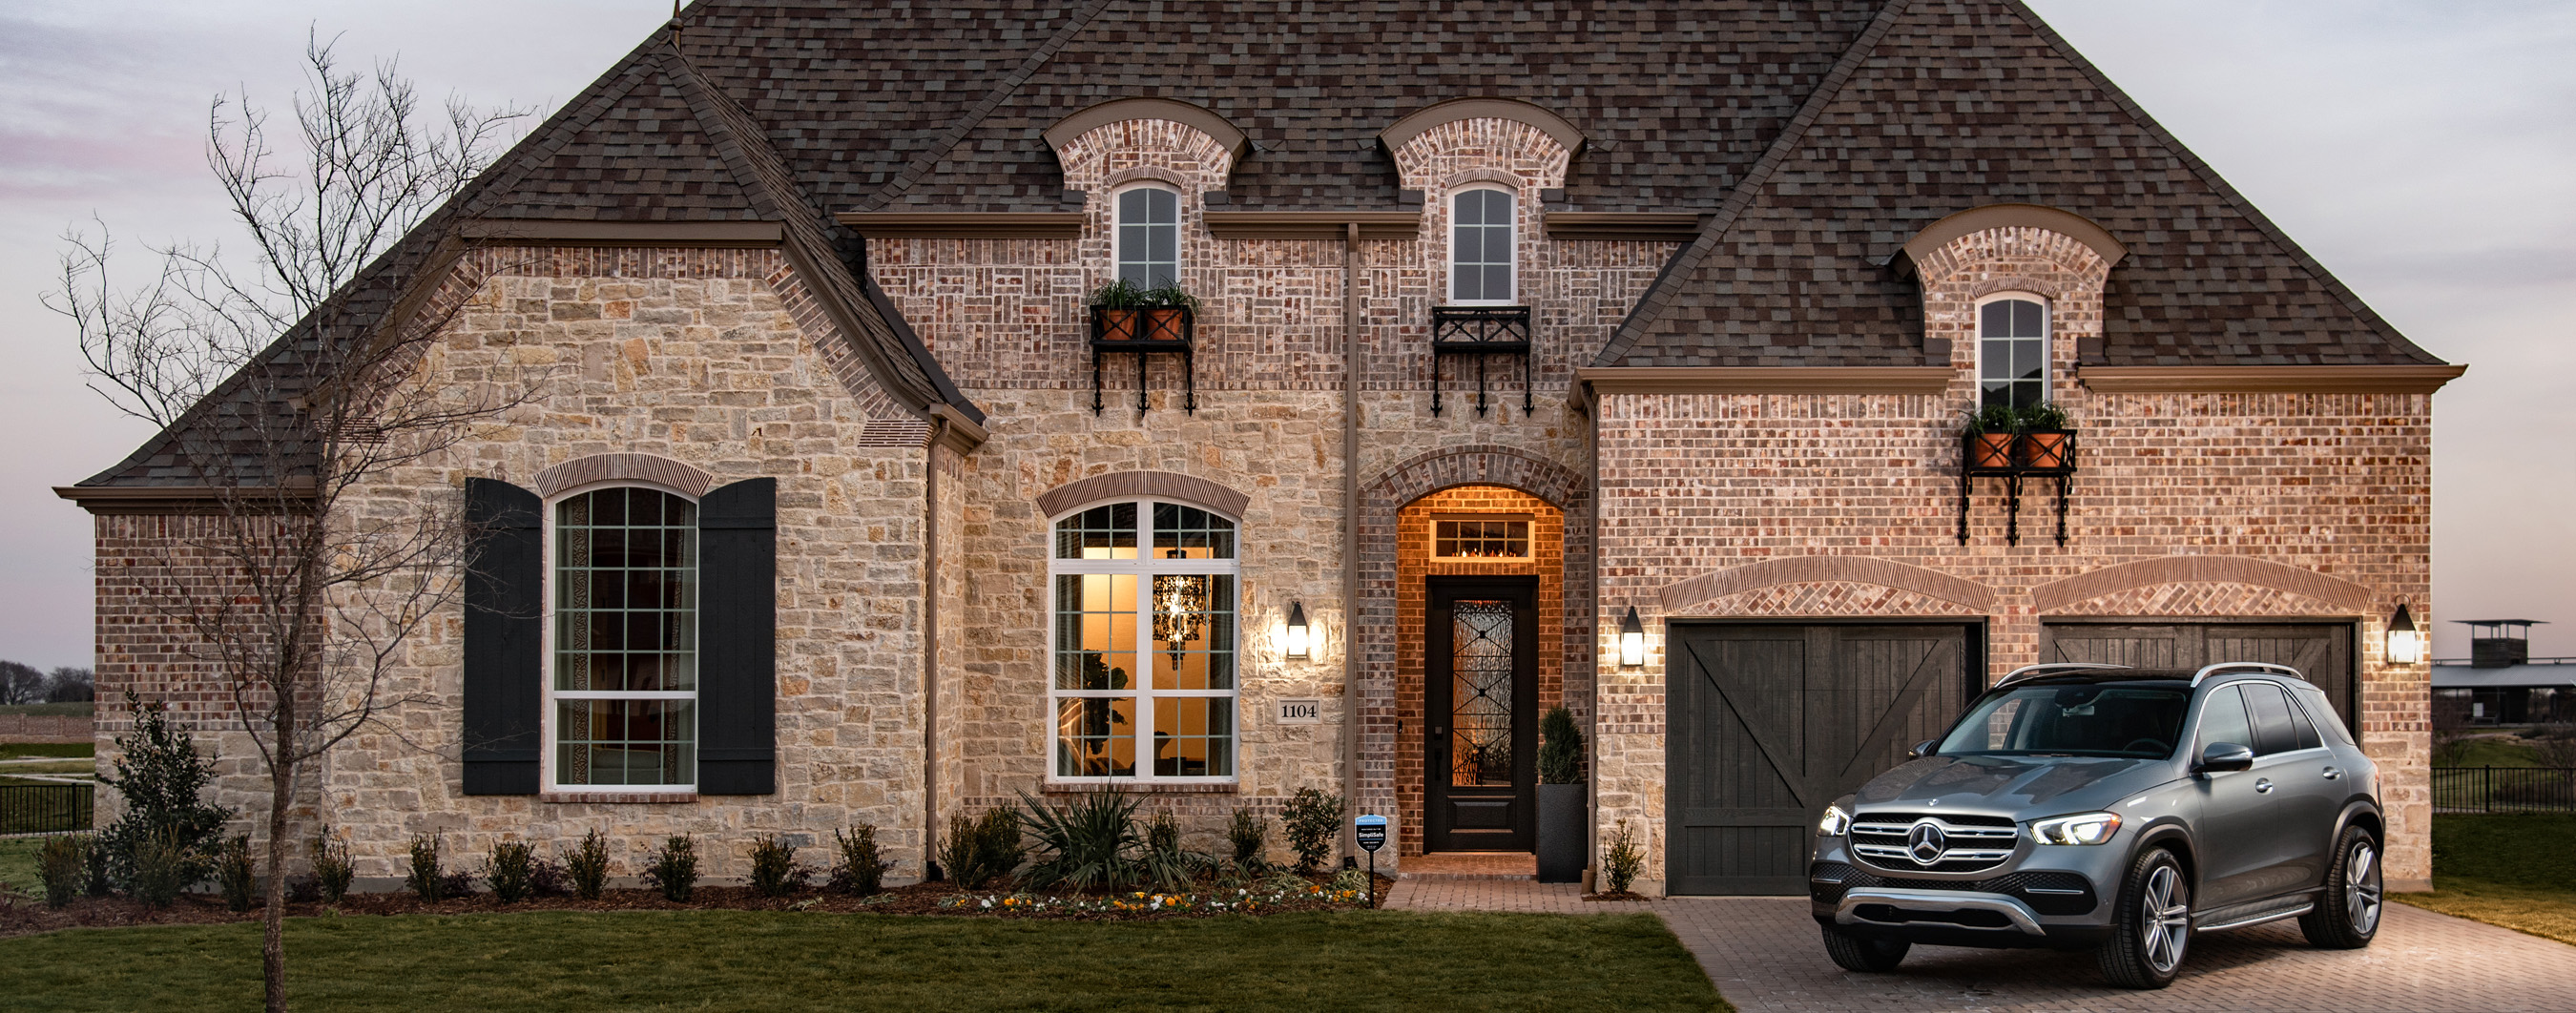 Take a Virtual Tour of HGTV Smart Home 2019 located in Roanoke Texas